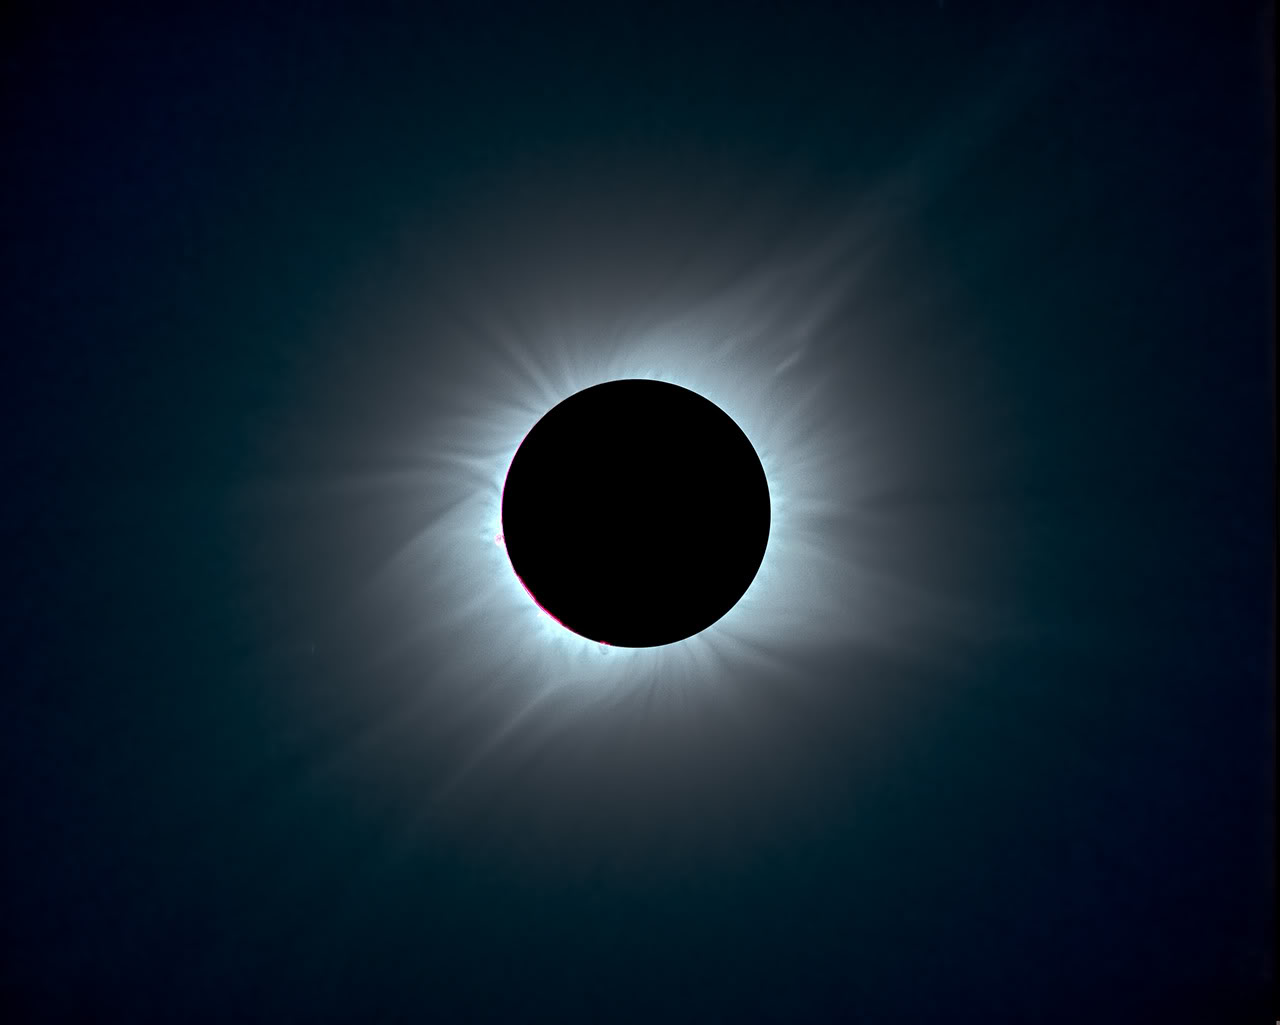 Dark Eclipse Wallpaper 1046.13 Kb